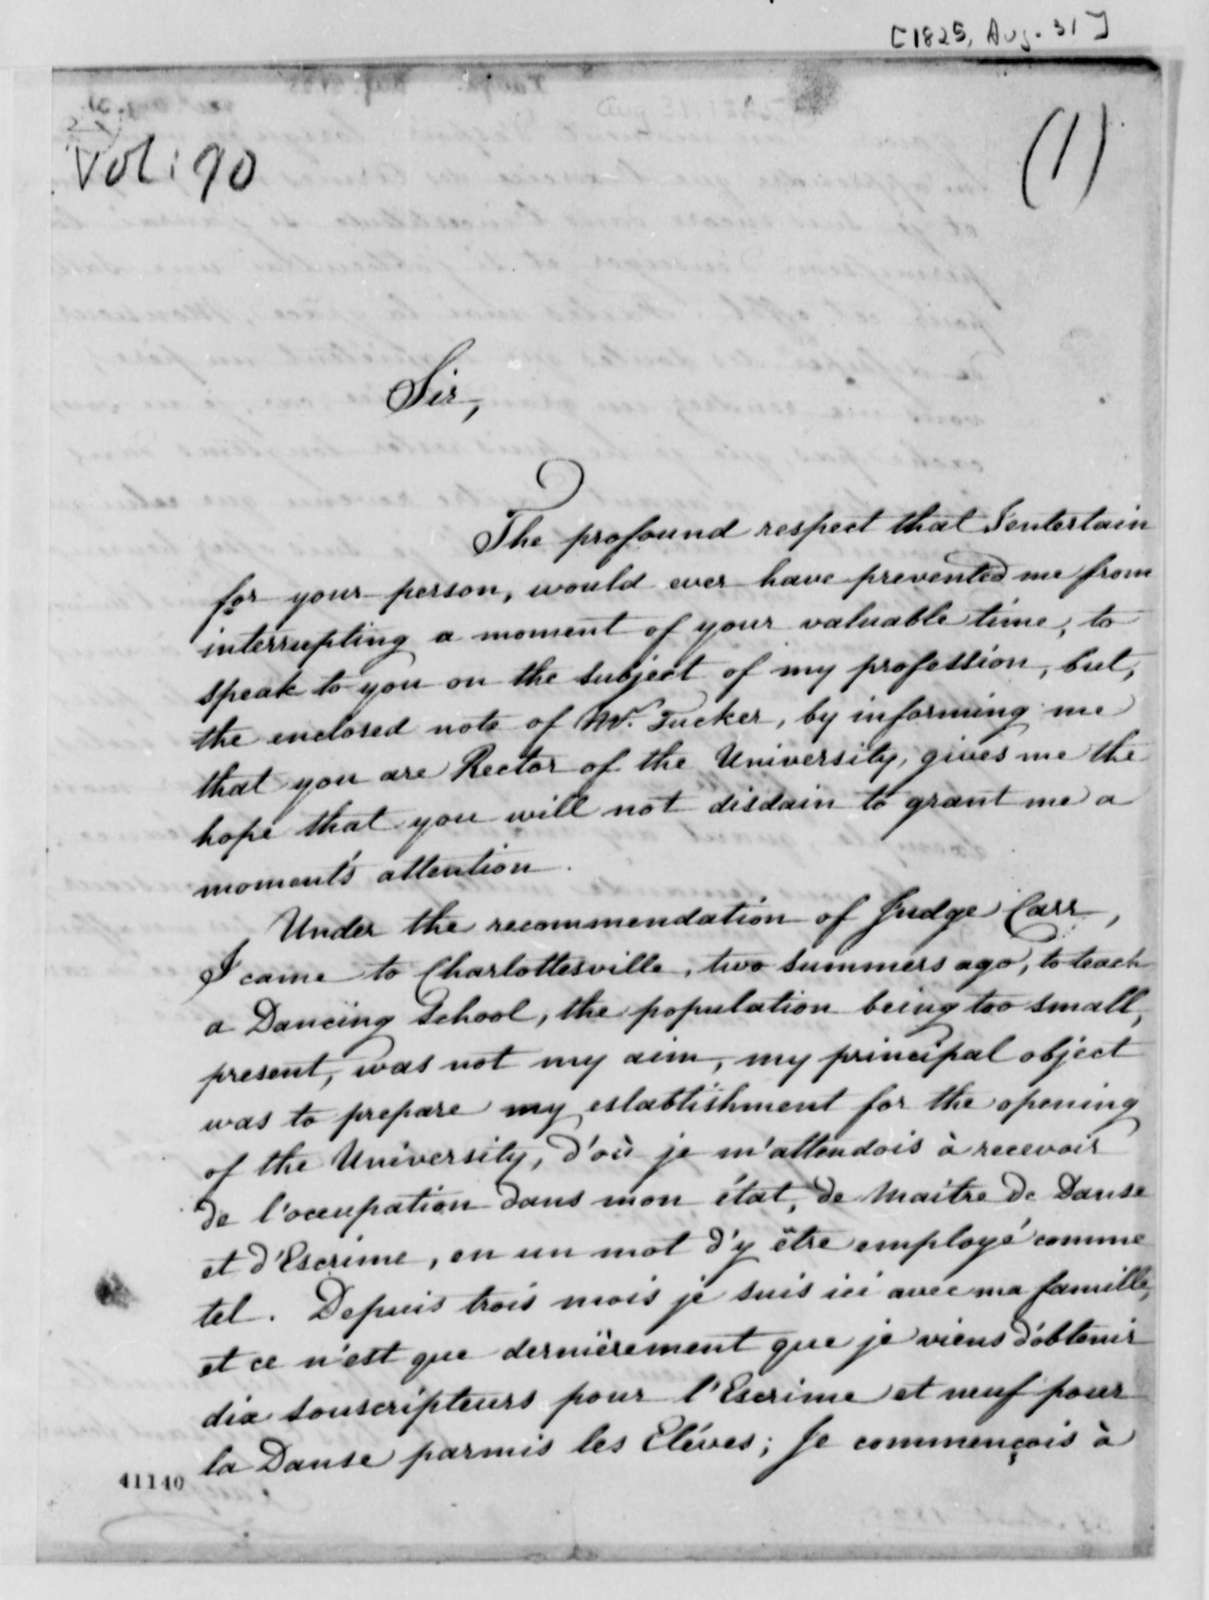 Louis Xaupe to Thomas Jefferson, August 31, 1825, in French and English